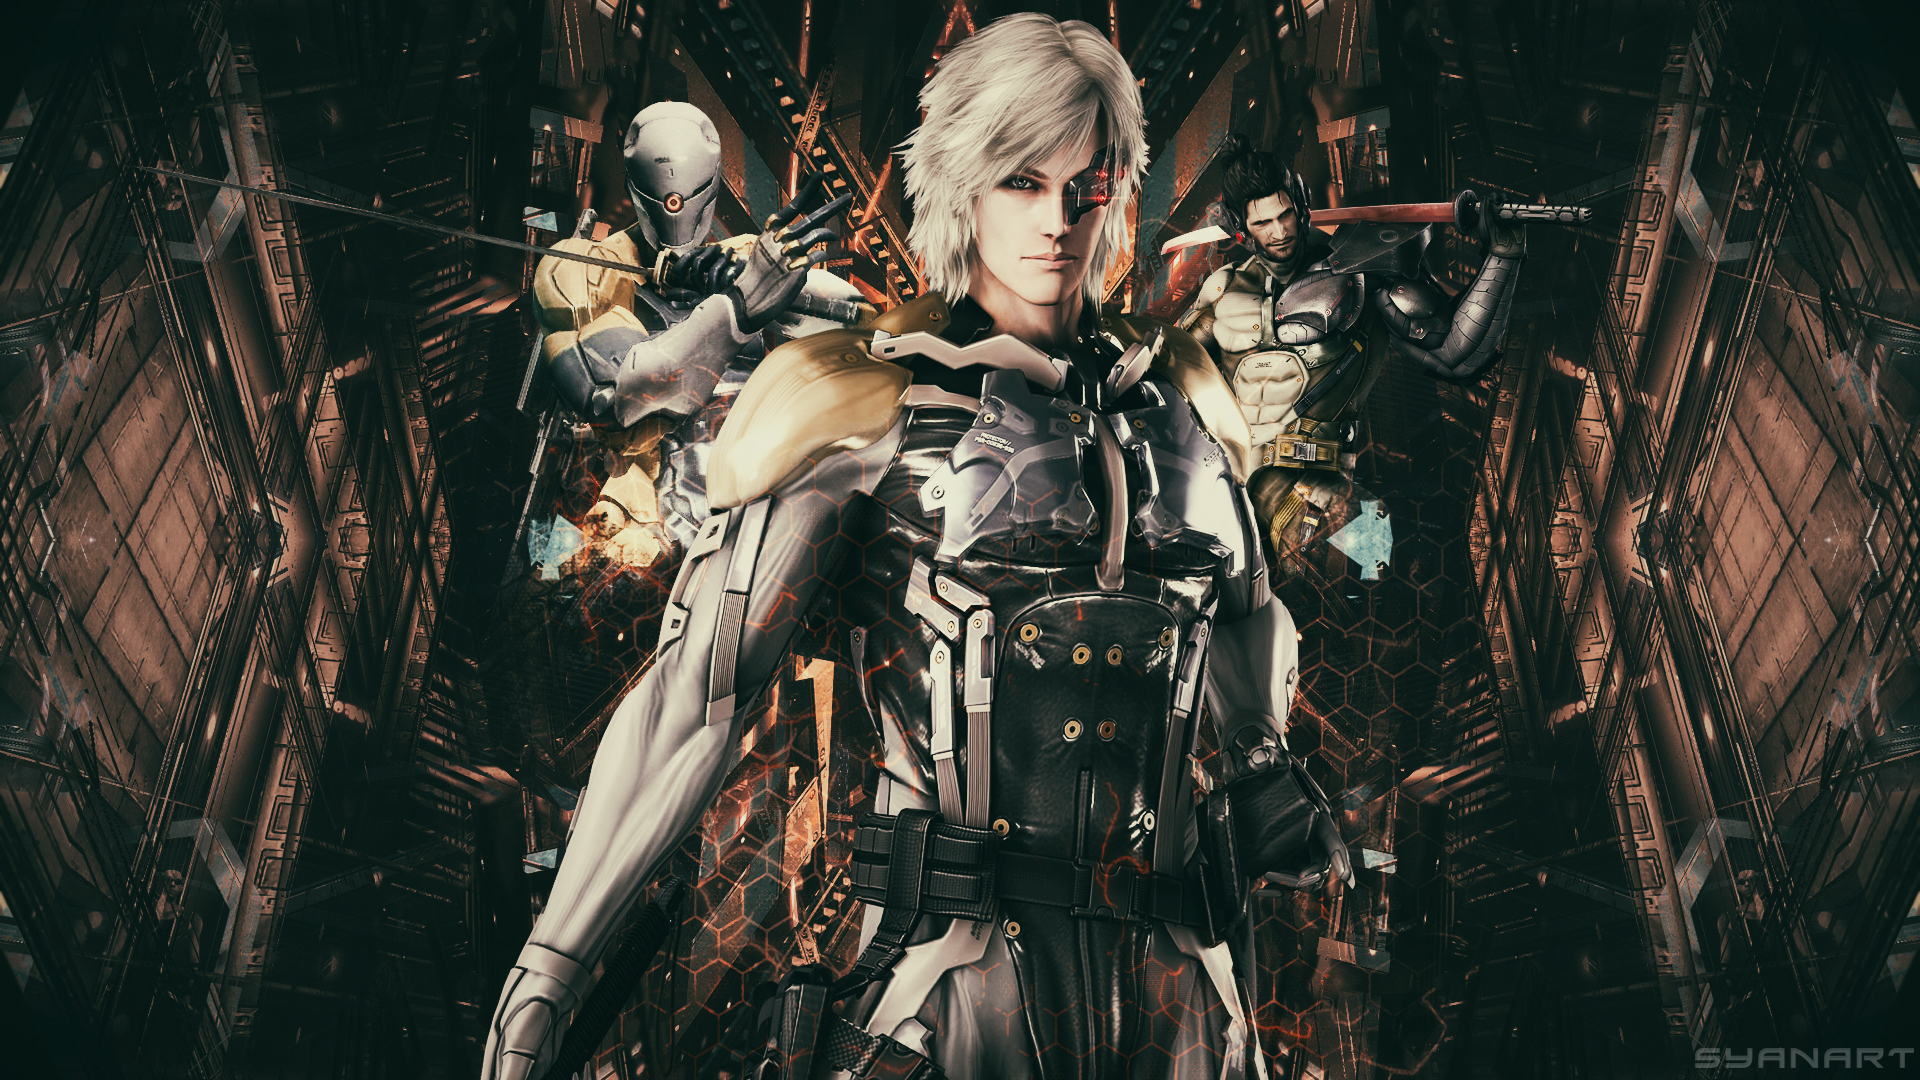 Metal gear rising revengeance syanart voltagebd Image collections